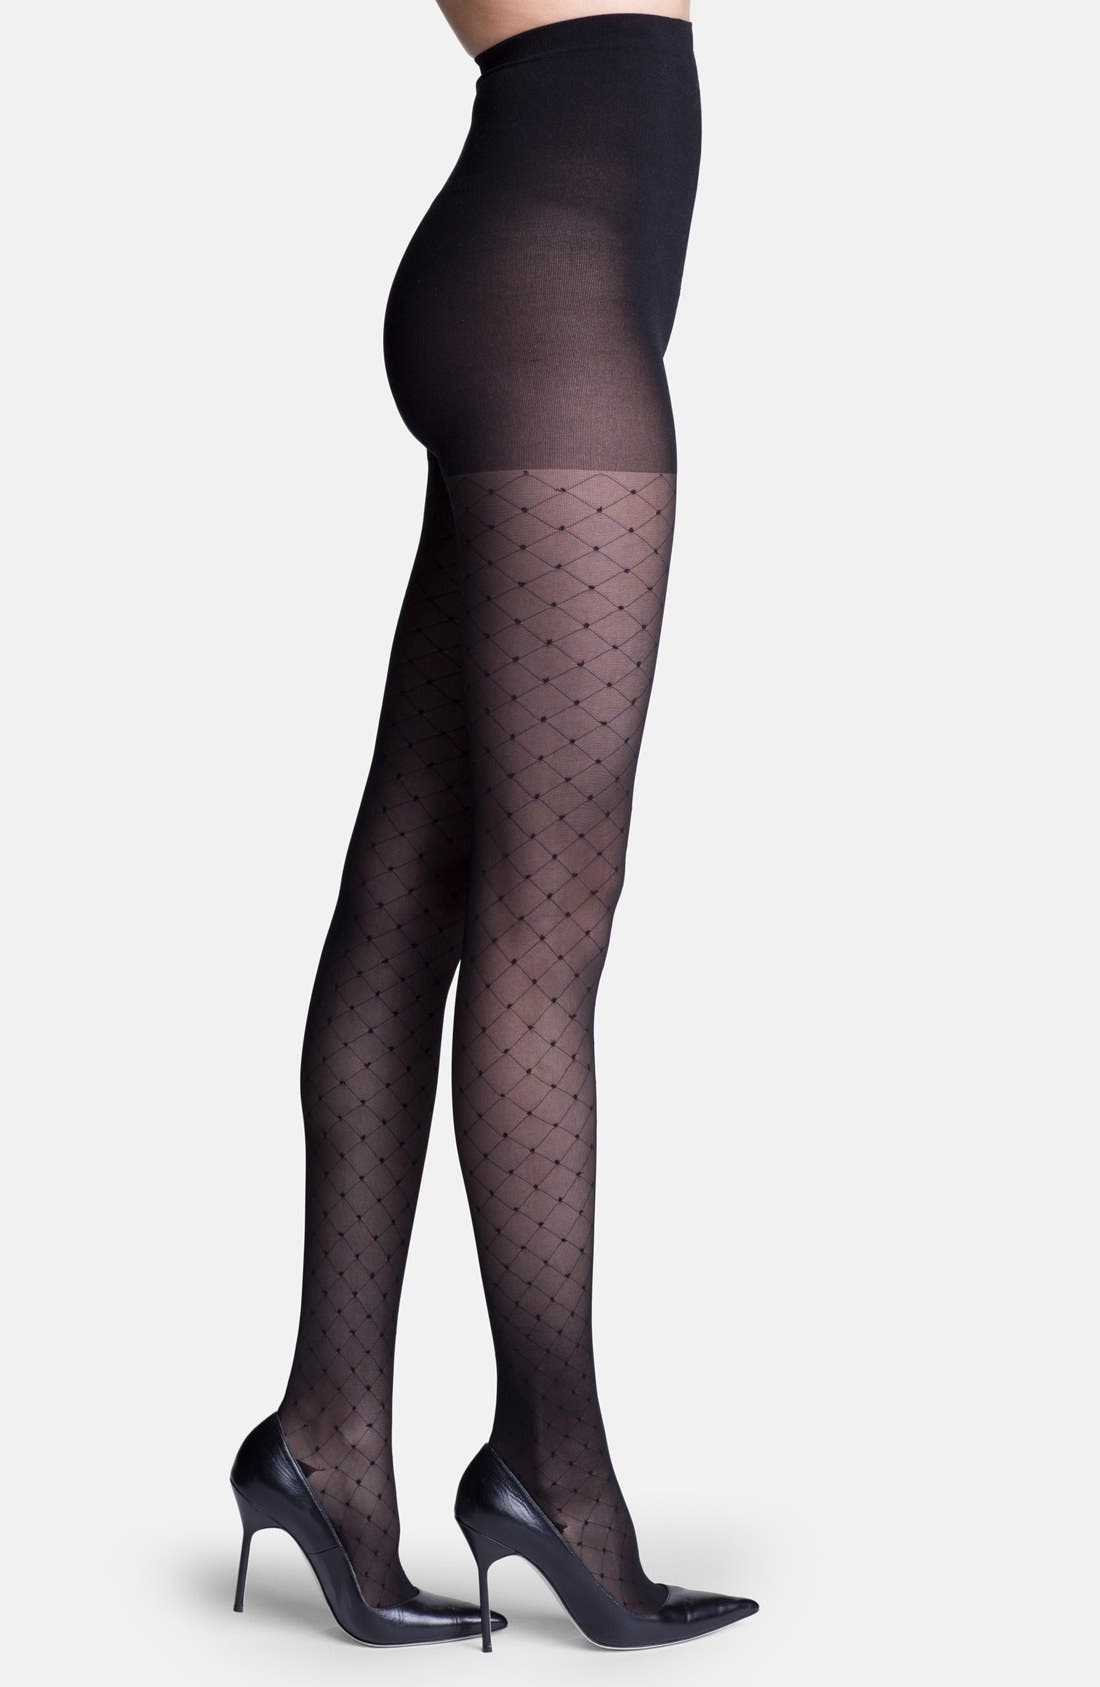 'Starlet' Diamond Pattern Compression Pantyhose,                             Main thumbnail 1, color,                             BLACK